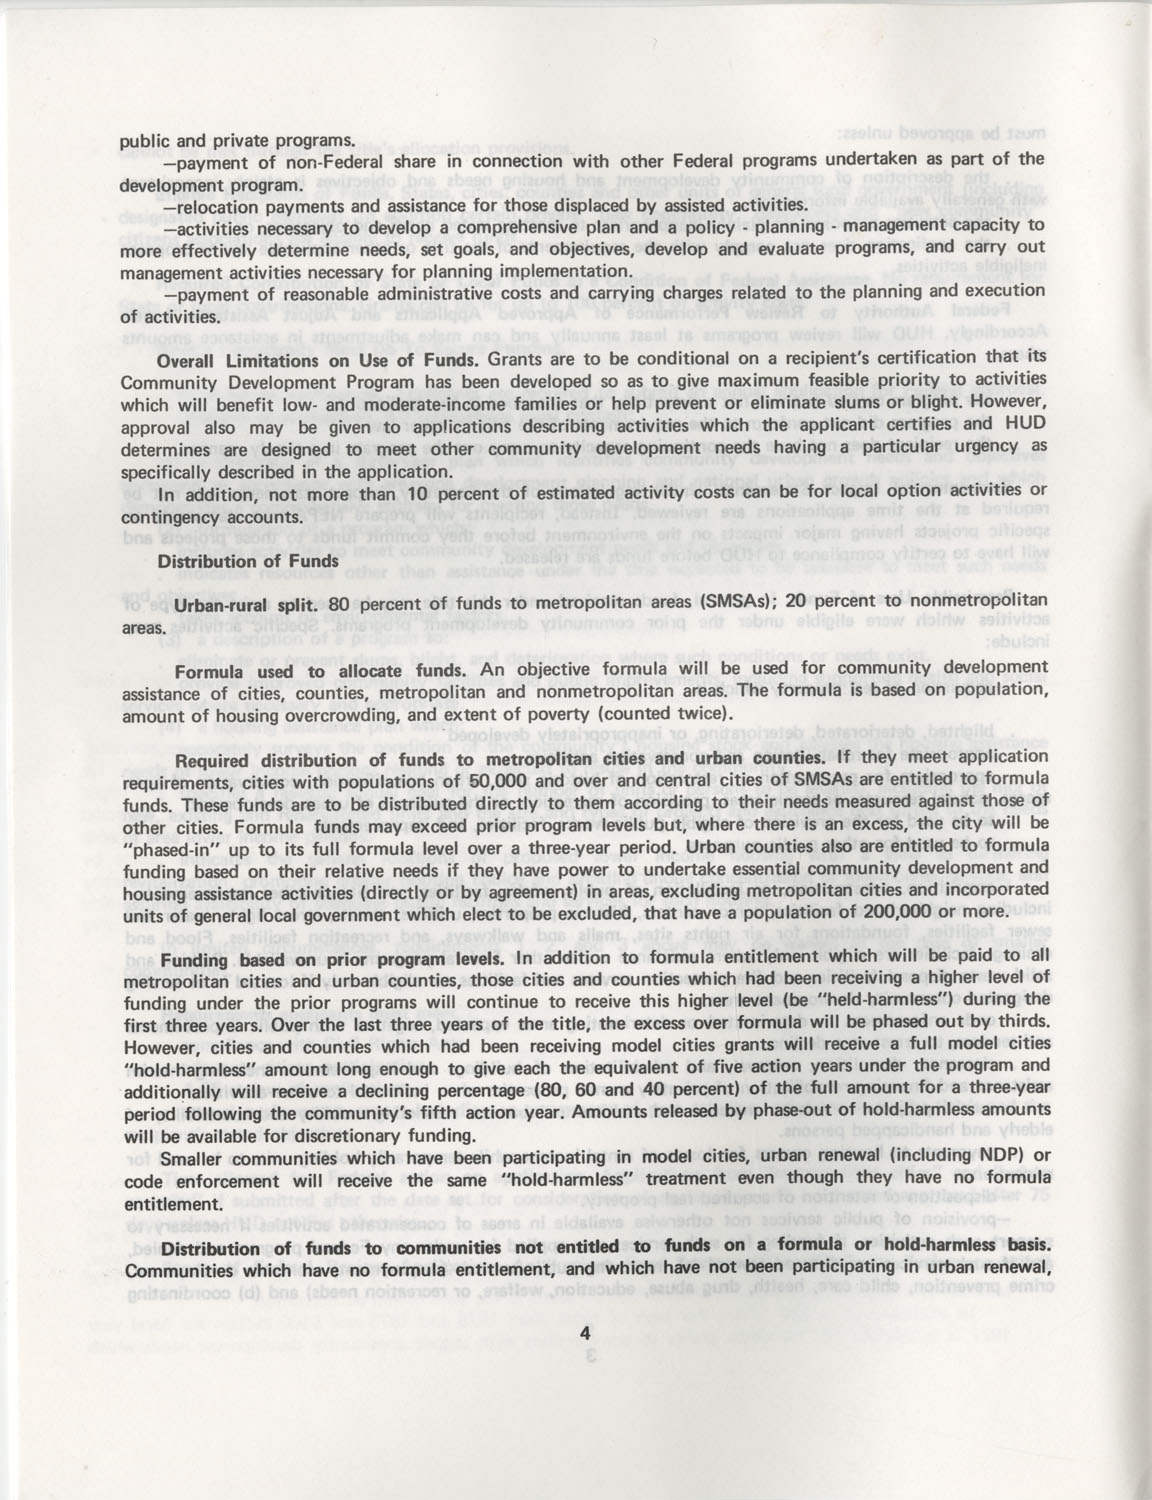 Summary of the Housing and Community Development Act of 1974, Page 4